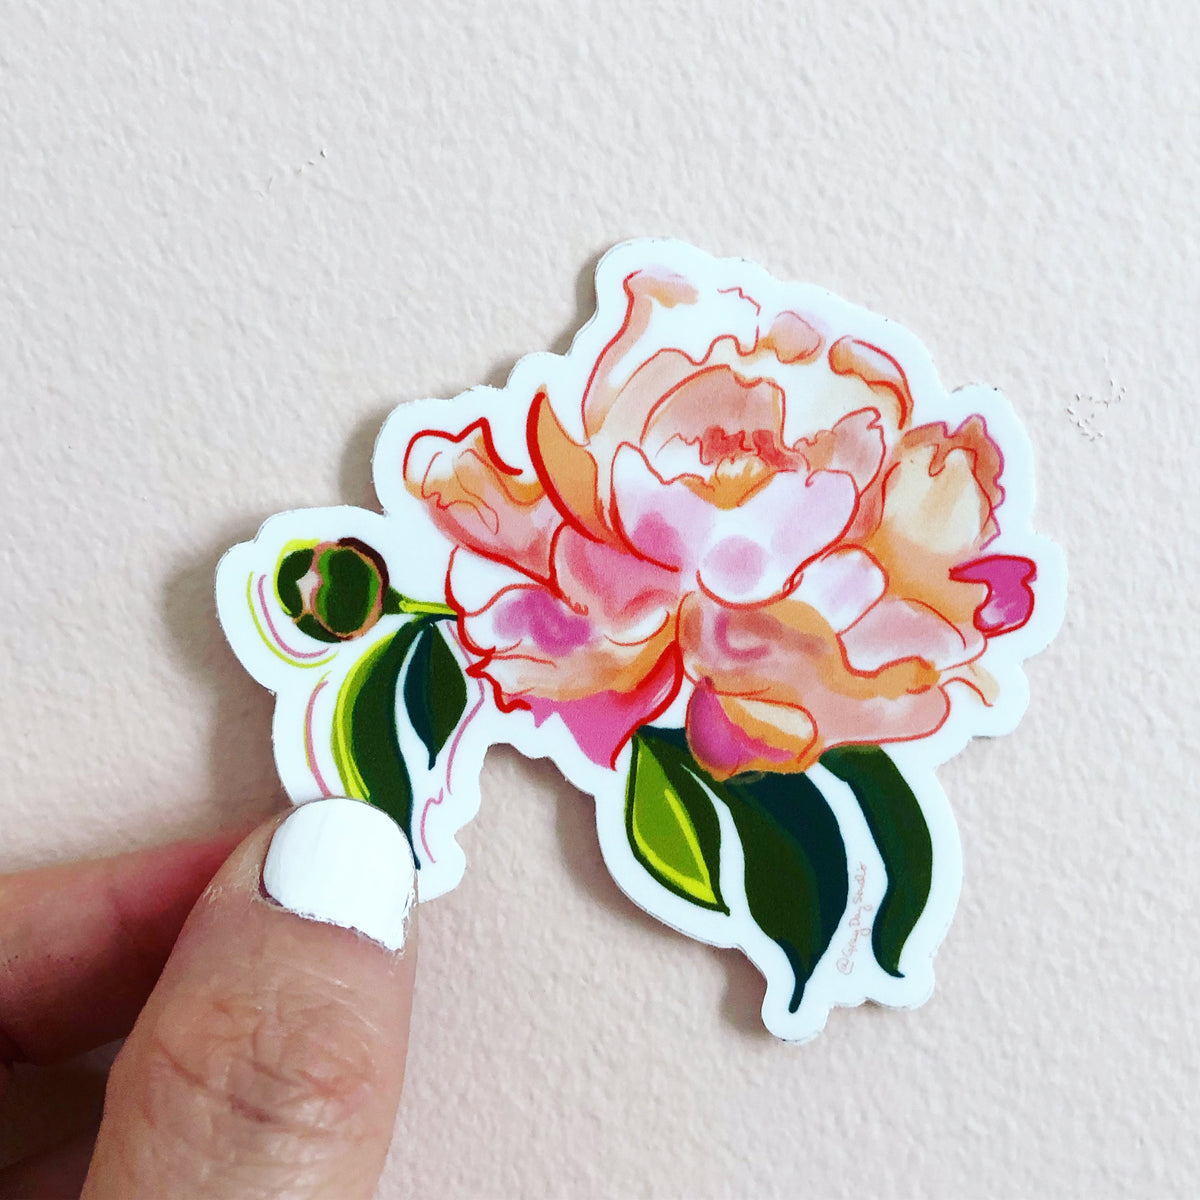 peony sticker, floral sticker, botanical sticker by Abigail Gray Swartz